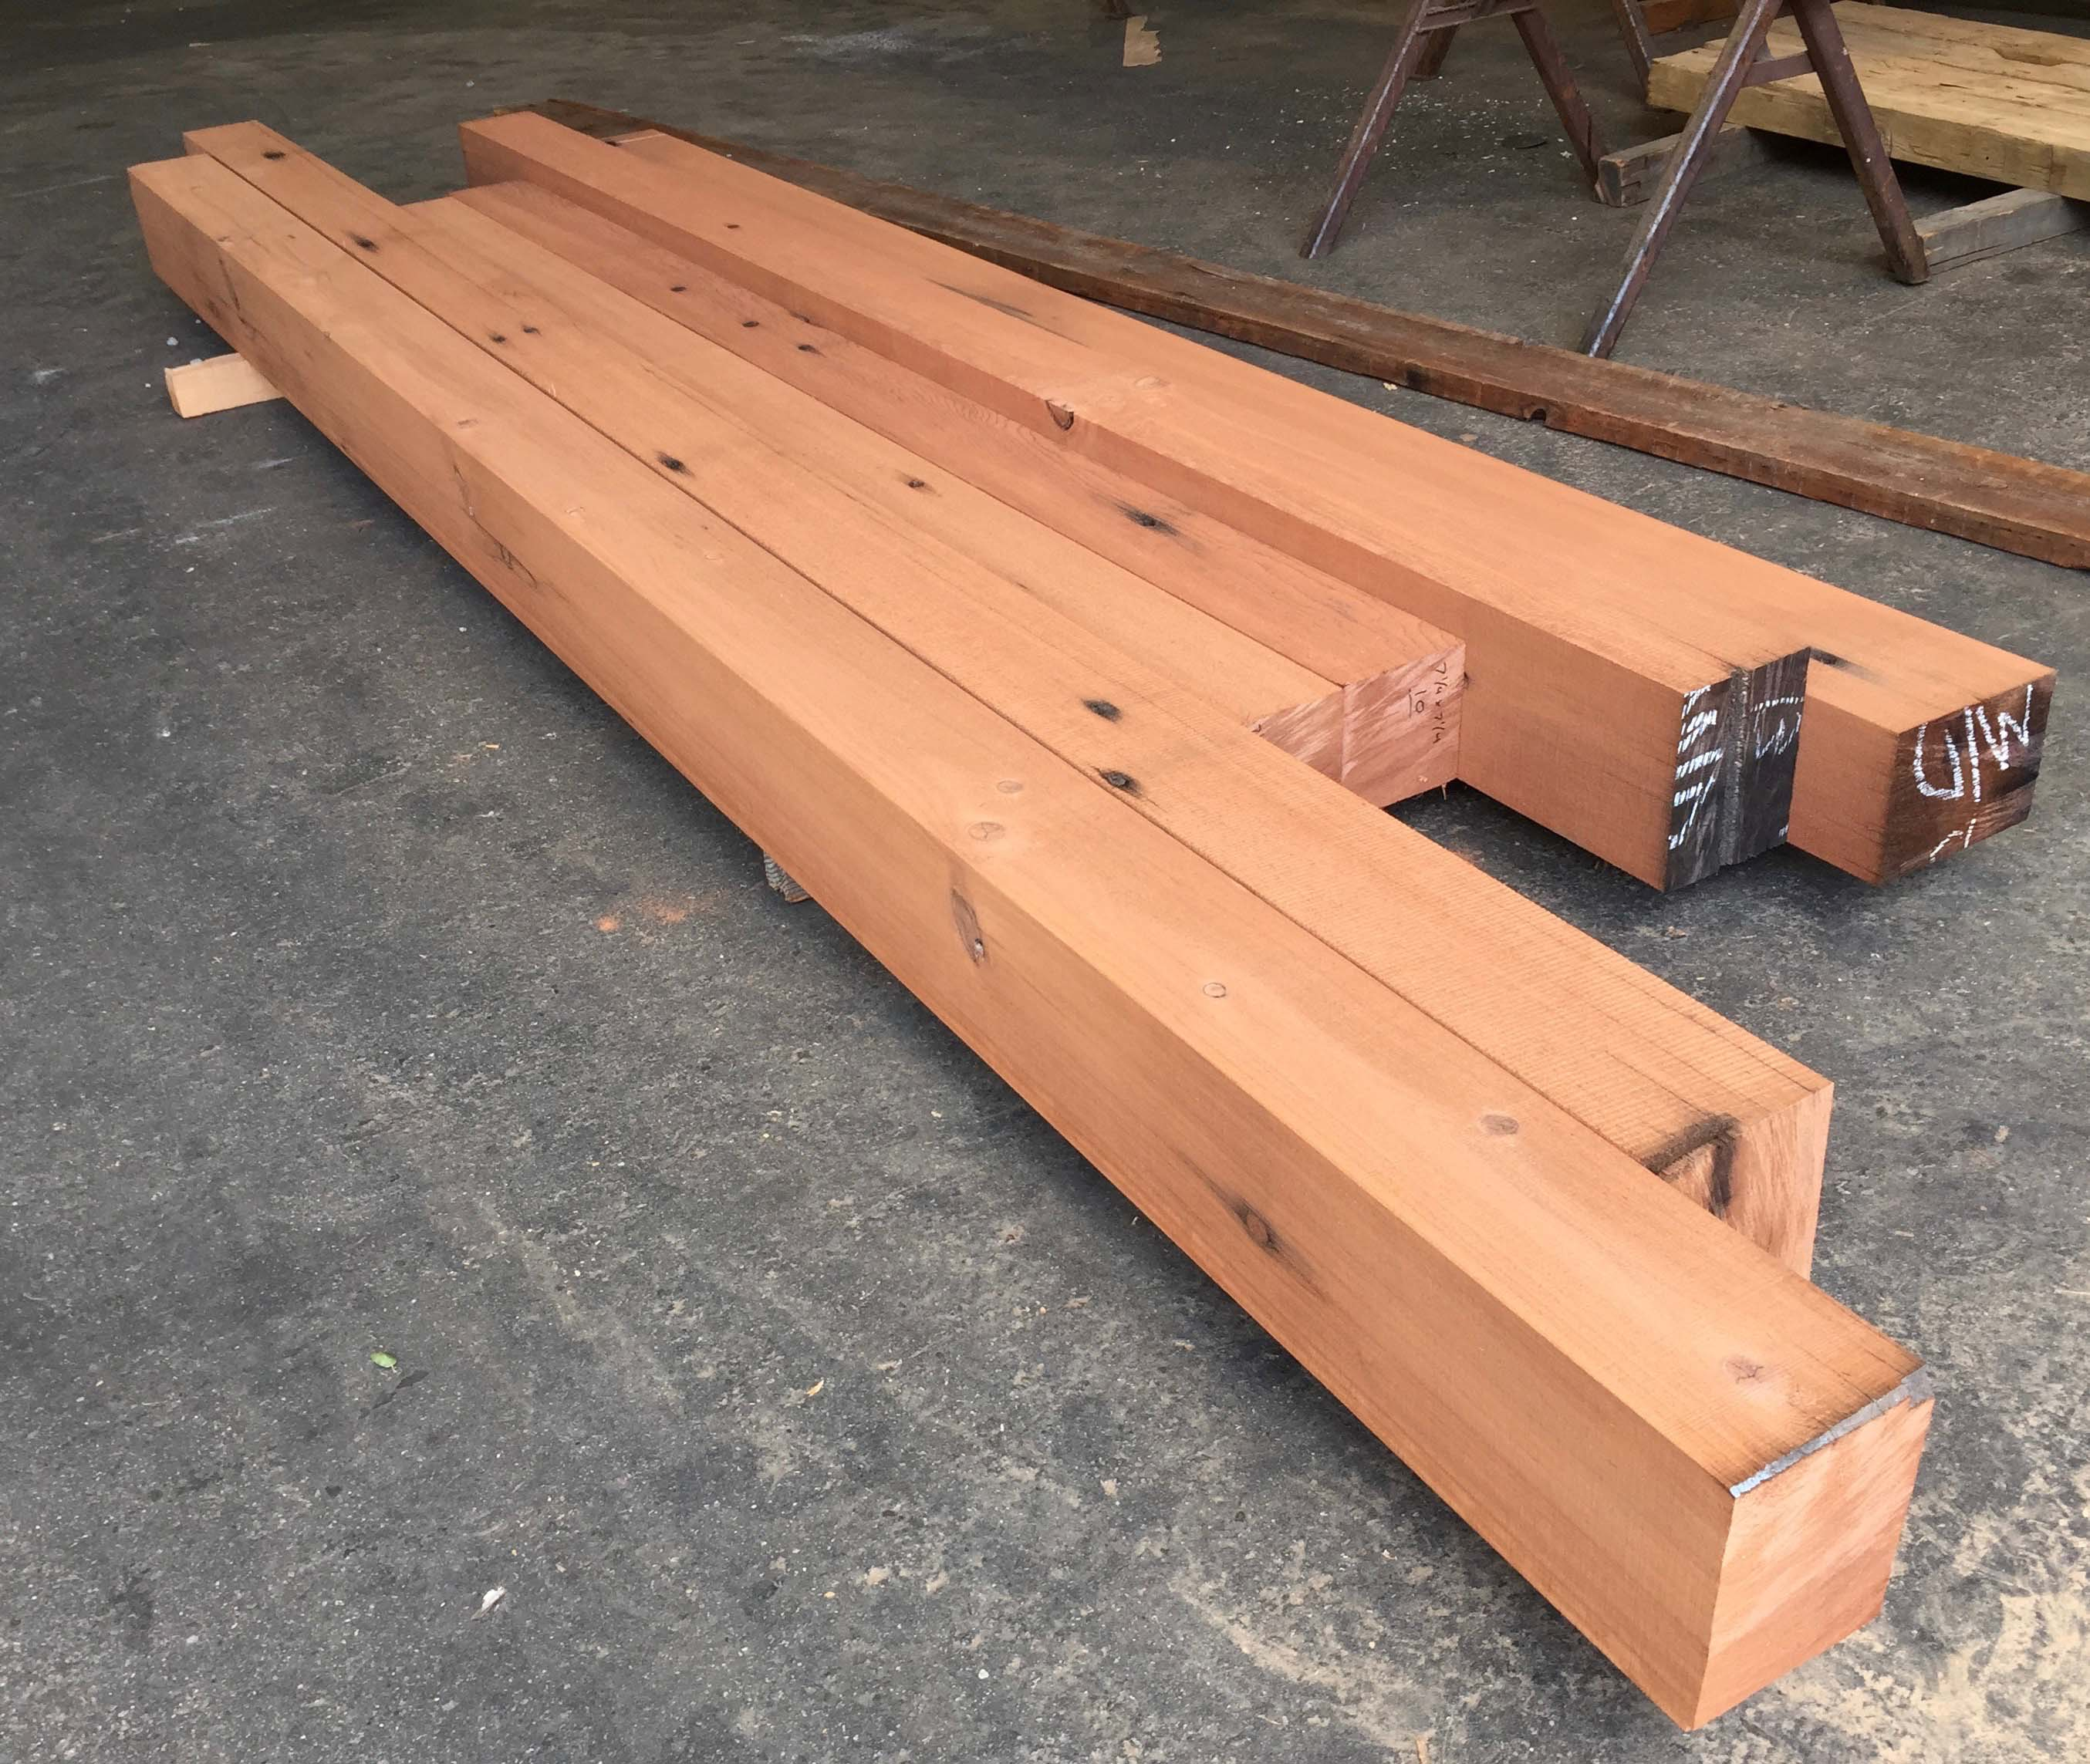 resawn redwood beams02 - Vintage Reclaimed Redwood